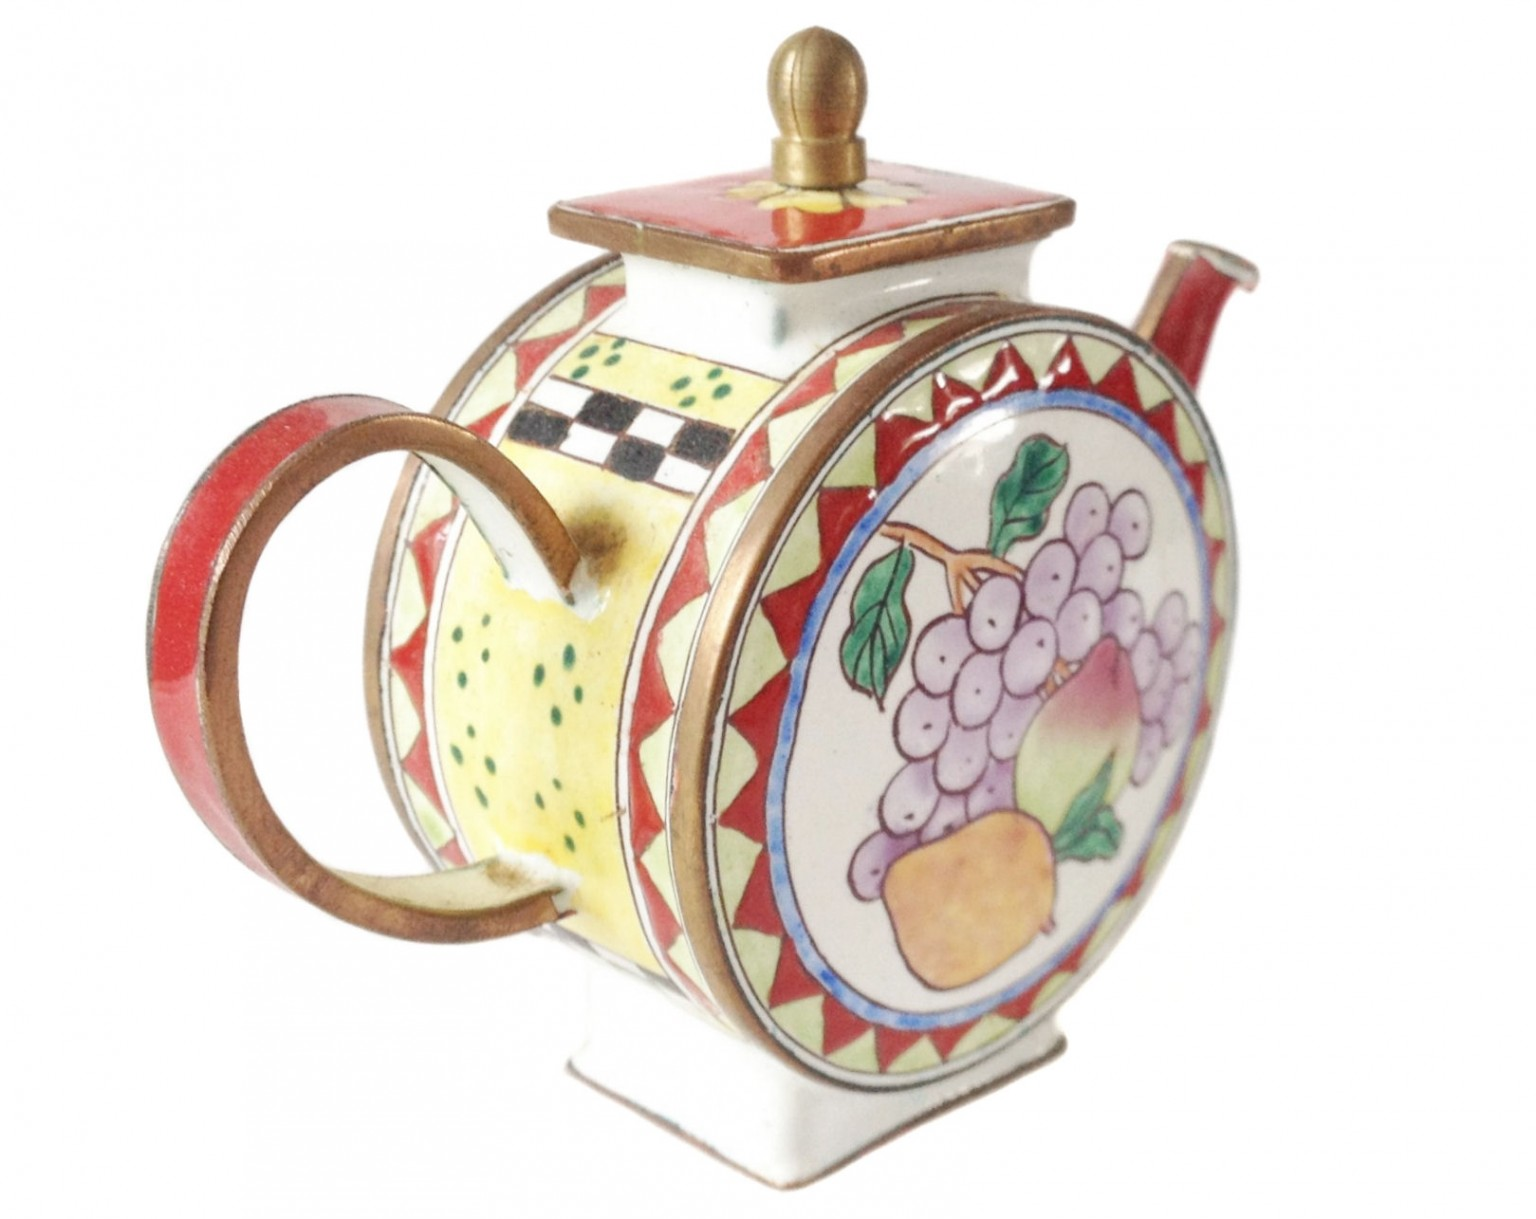 nivag collectables trade plus aid fruit trade plus aid fruit teapot. Black Bedroom Furniture Sets. Home Design Ideas